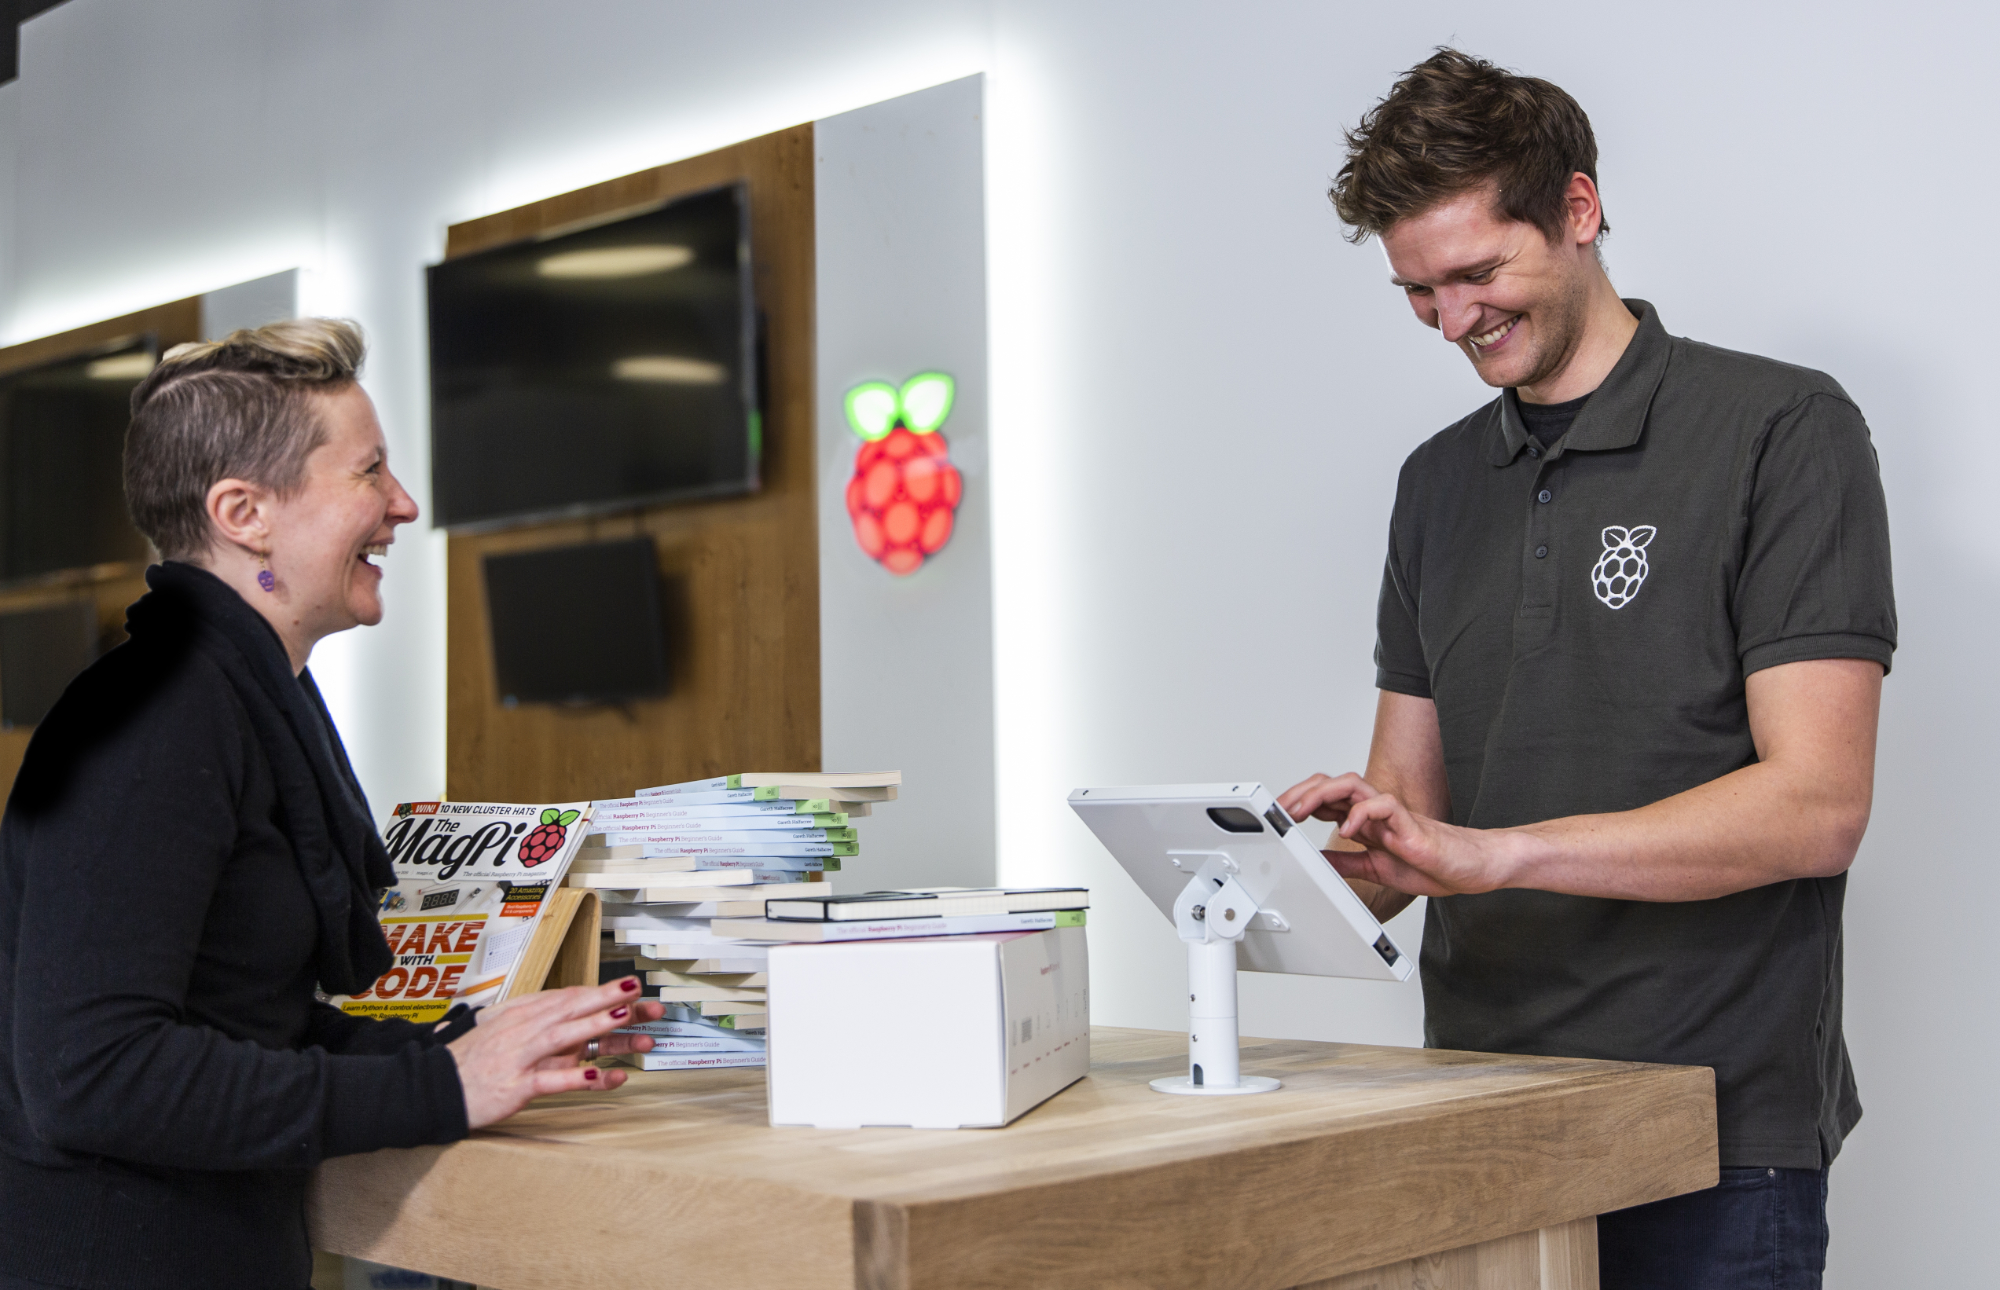 Making a purchase at the Raspberry Pi store